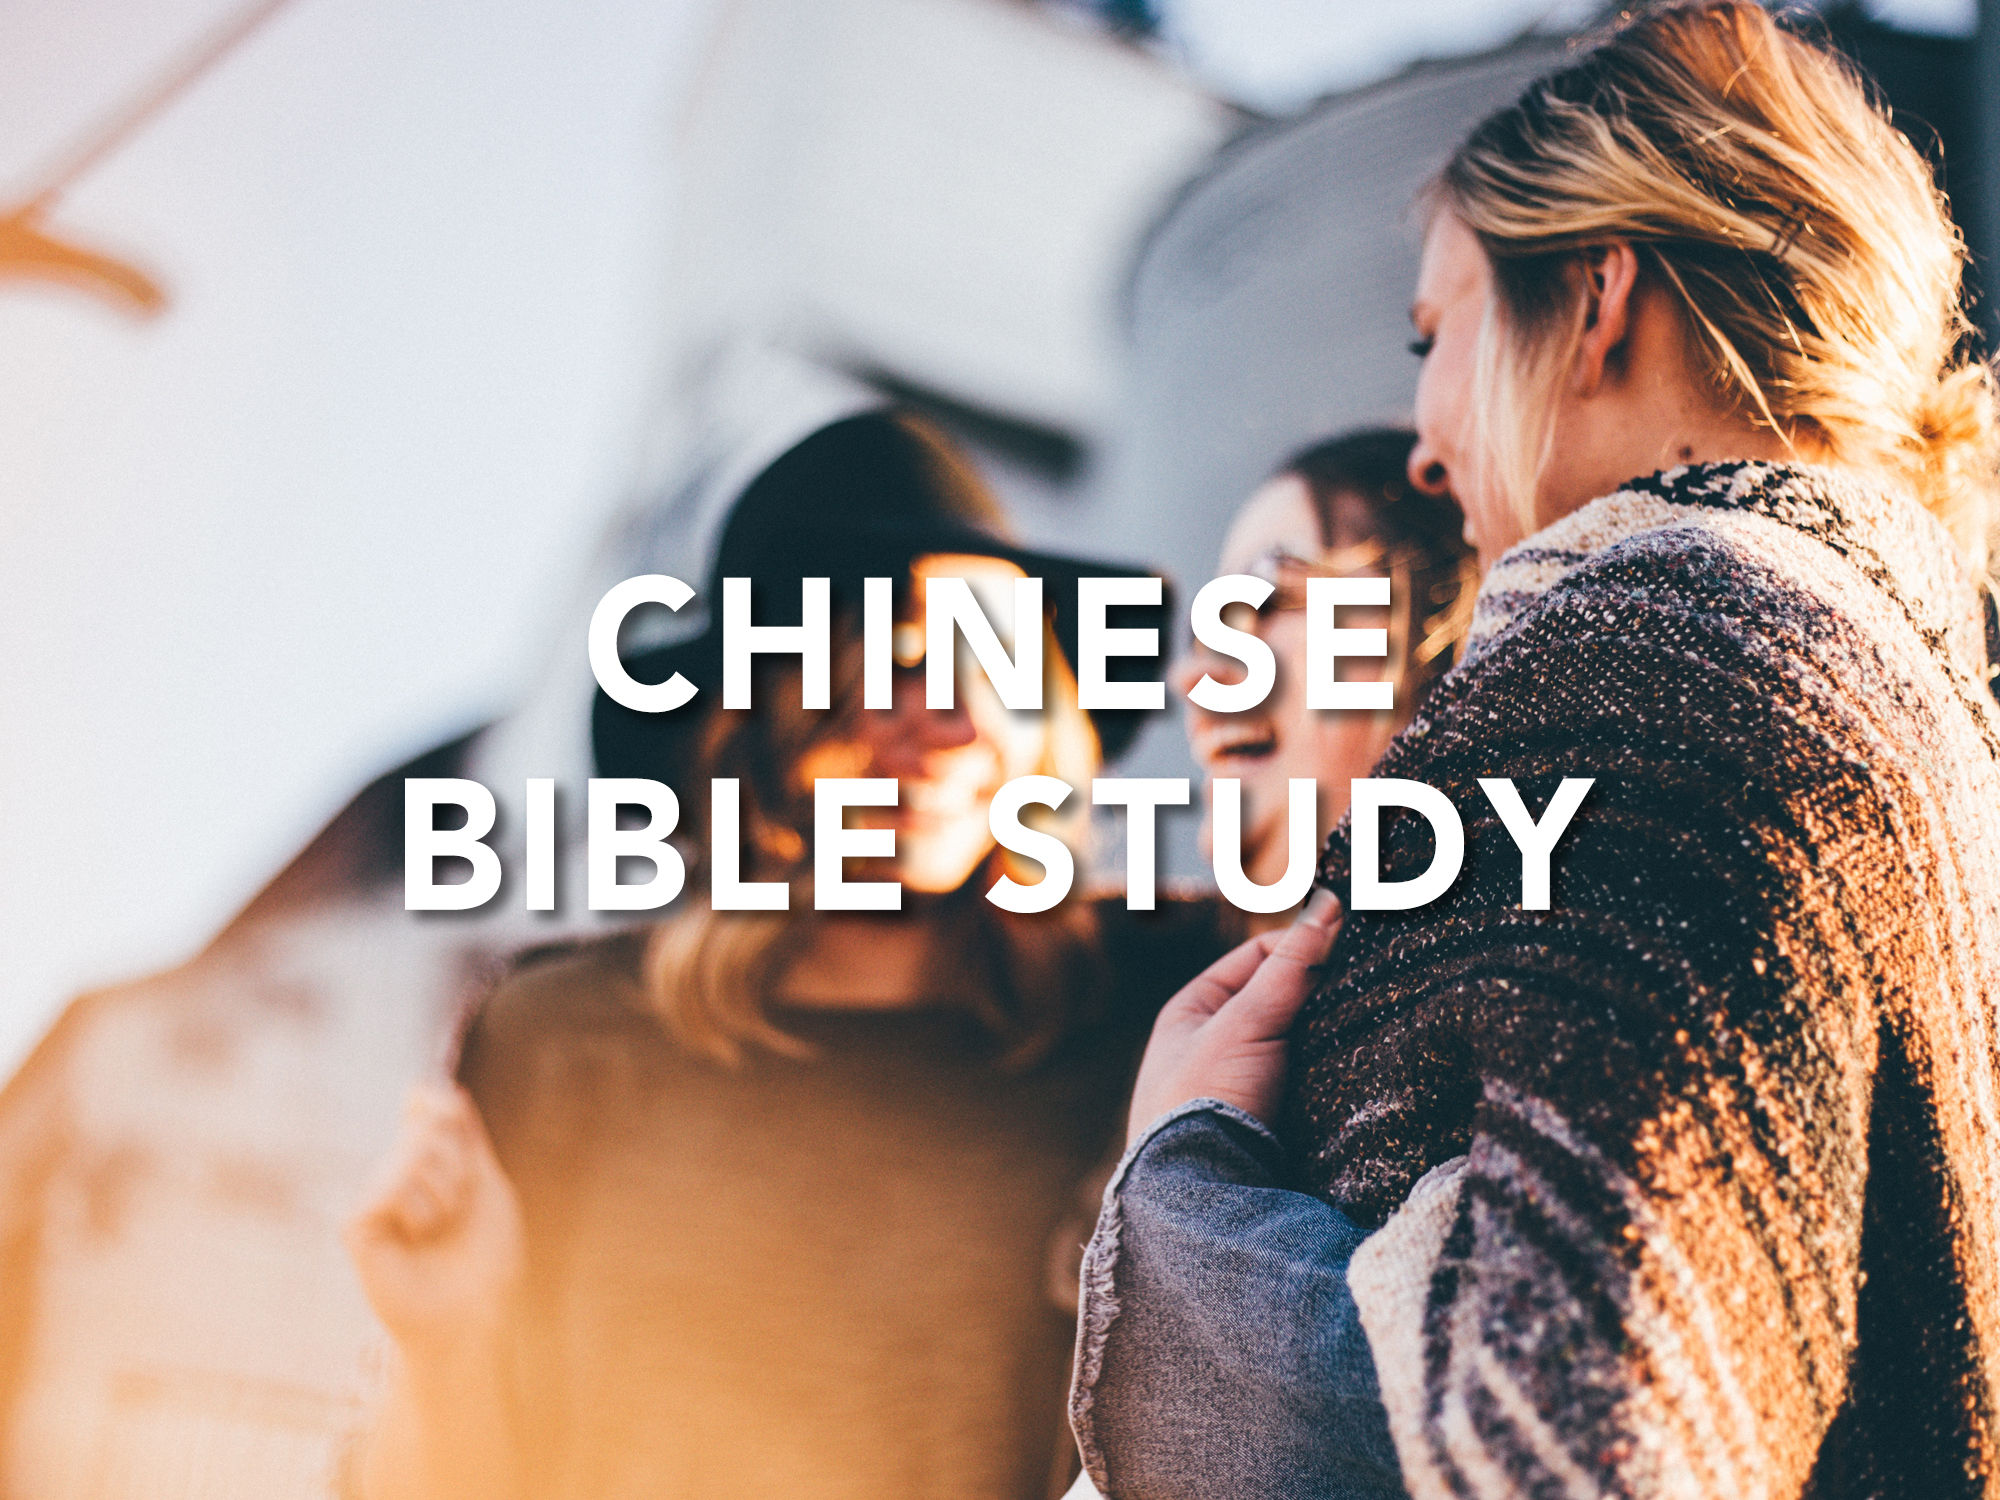 Bible study group for mixed adults of all ages who speak Chinese.